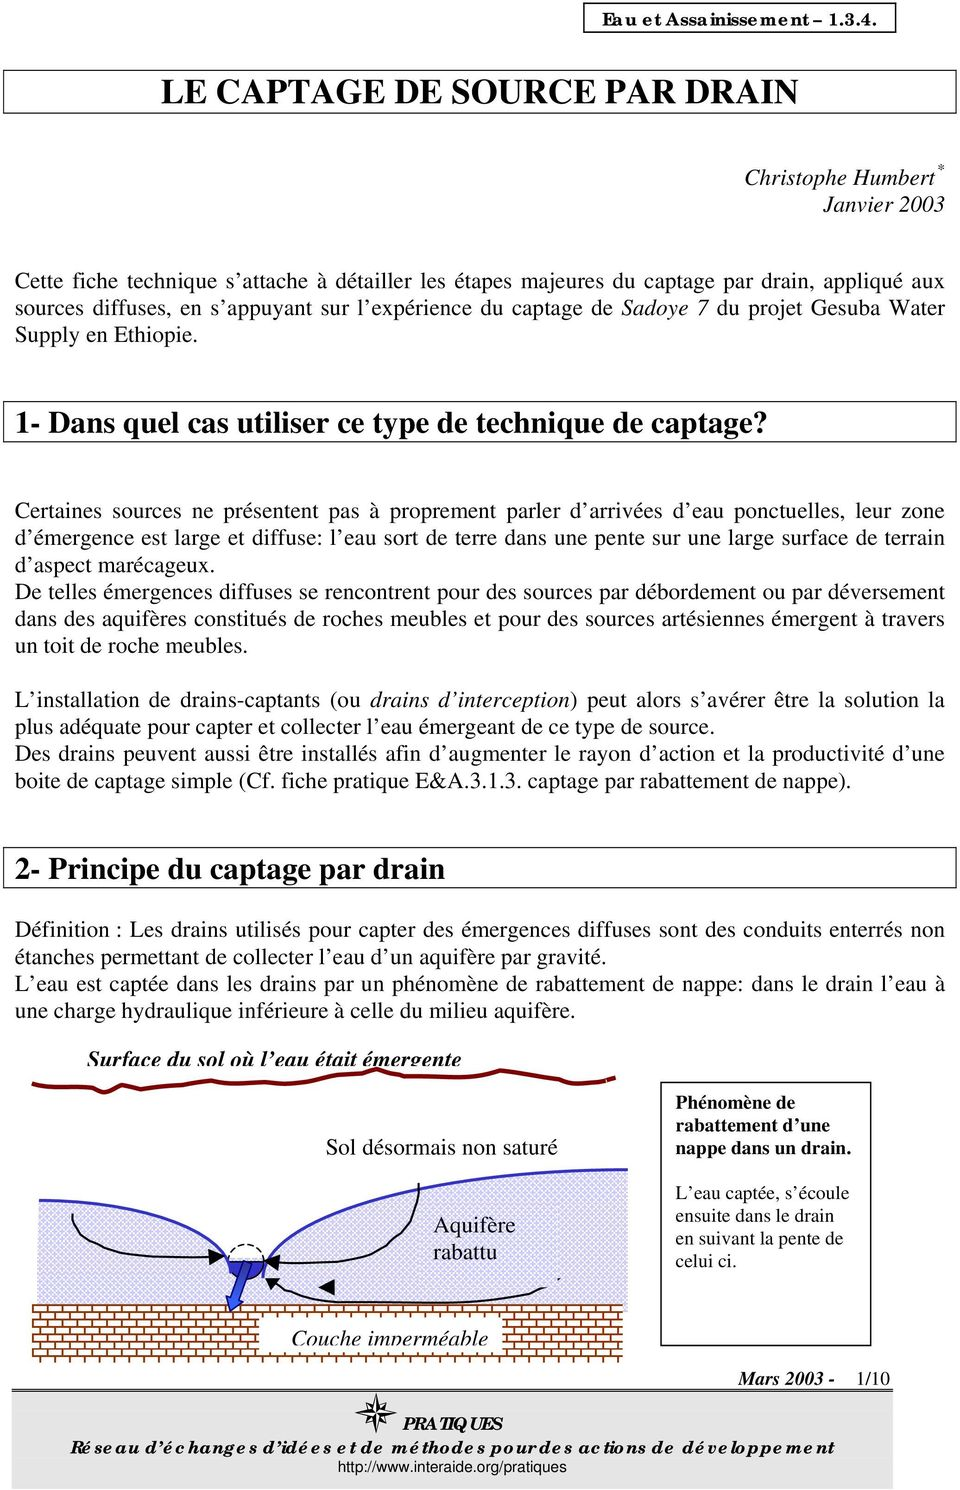 Comment Drainer Un Terrain Marécageux le captage de source par drain - pdf free download